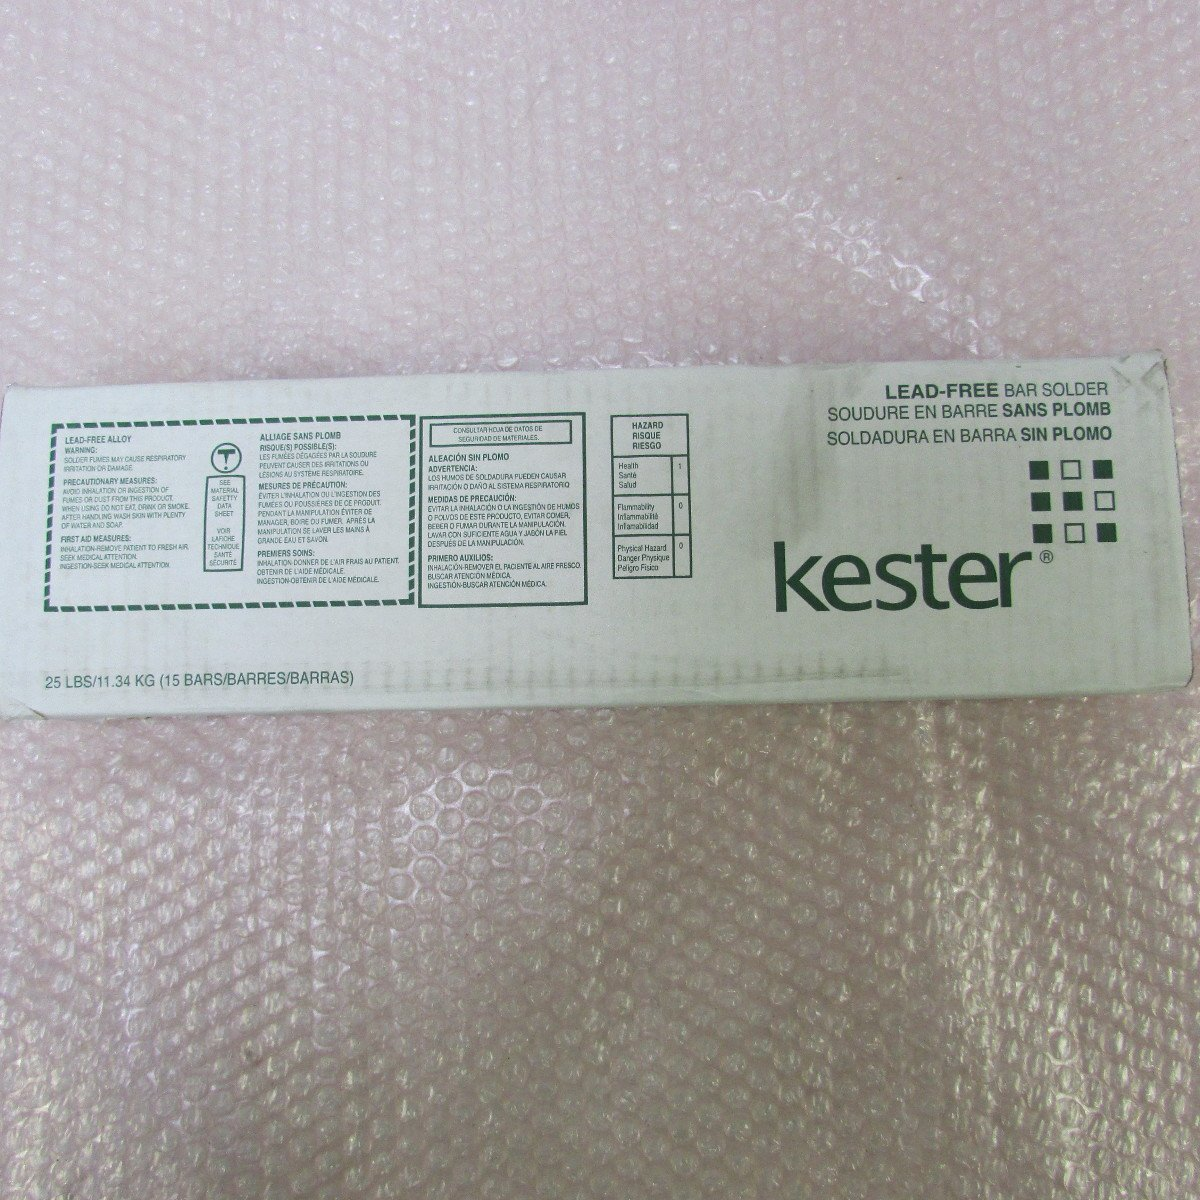 Kester Ultrapure Lead-Free Solder Bar - Sn/Ag/Cu Compound - 04-7068-0000 [PRICE is per Bar]: Amazon.com: Industrial & Scientific